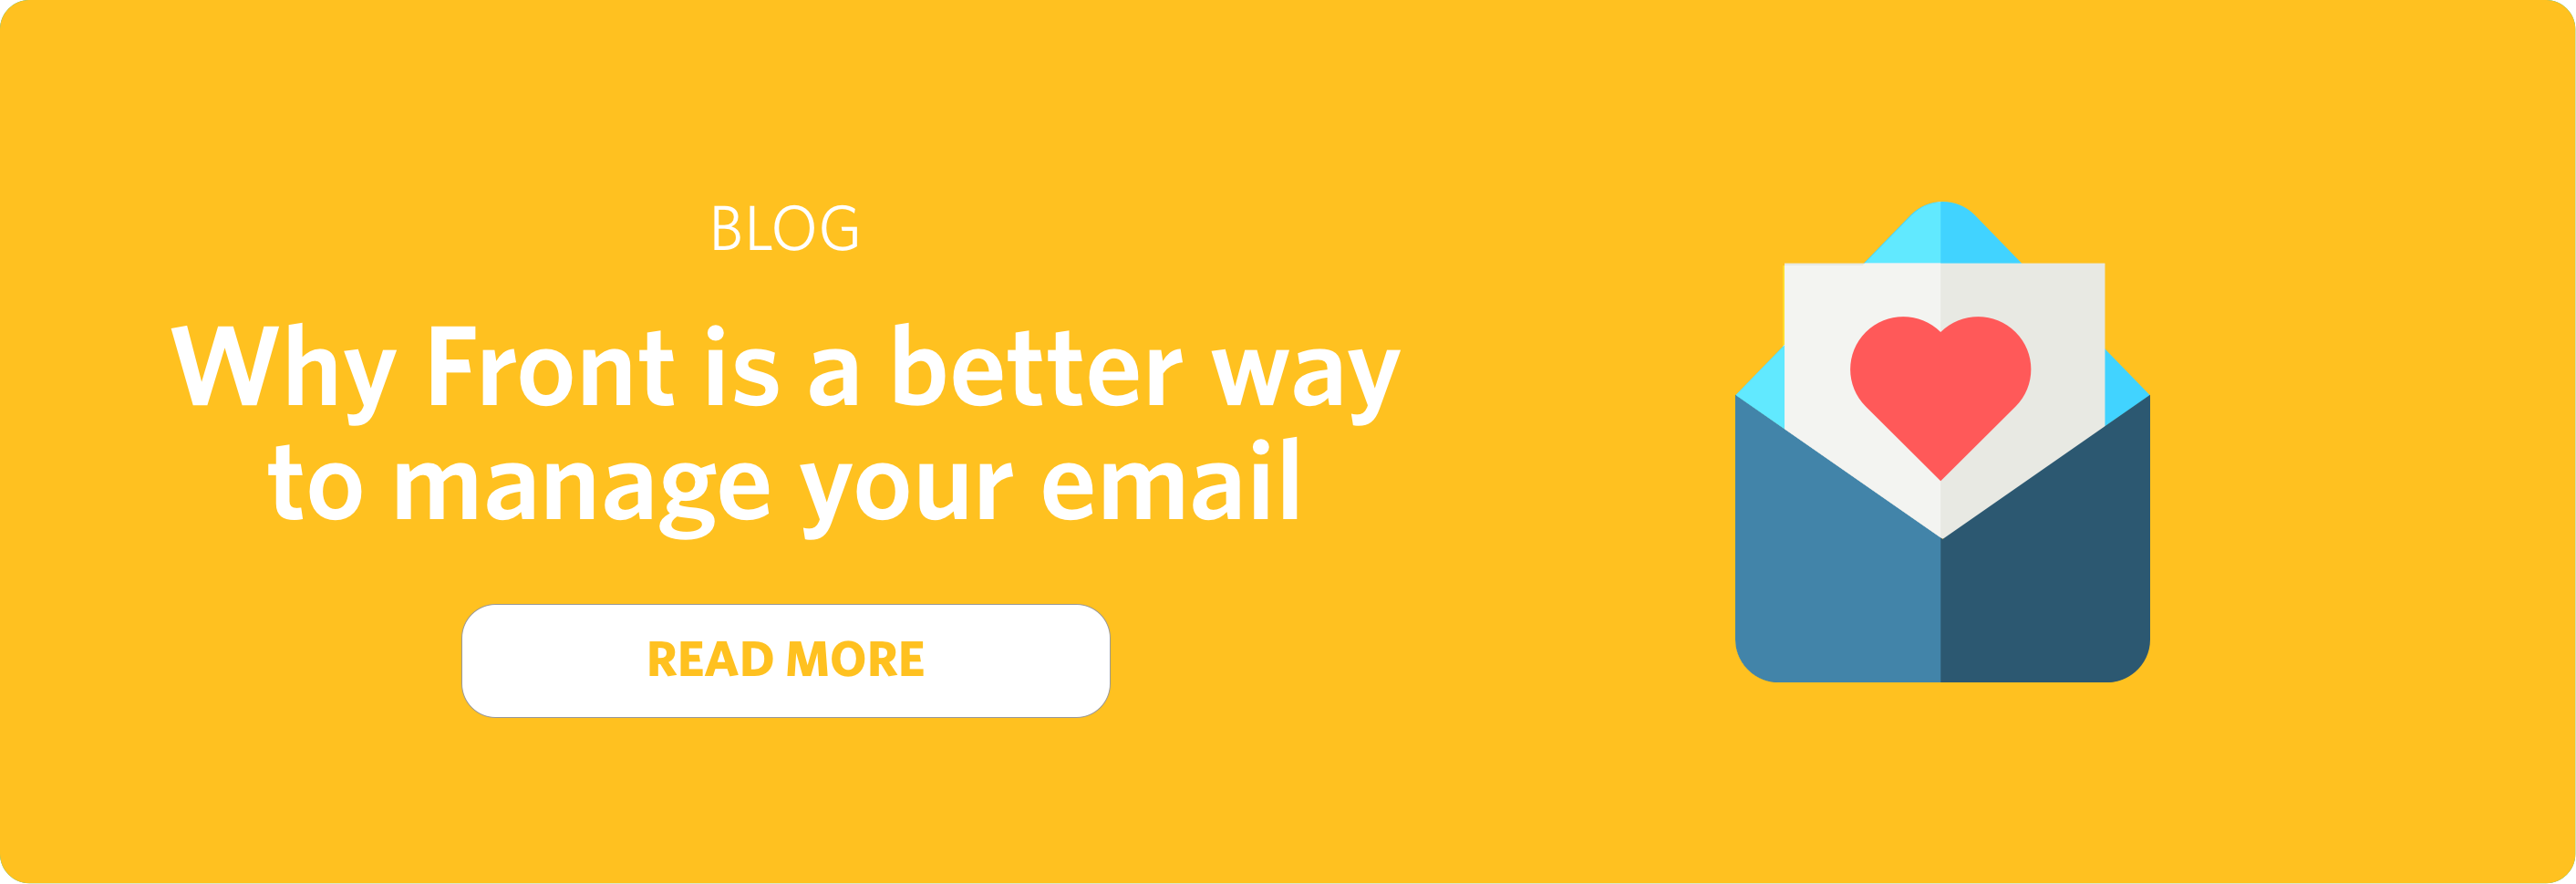 Blog post why Front is a better way to manage your email